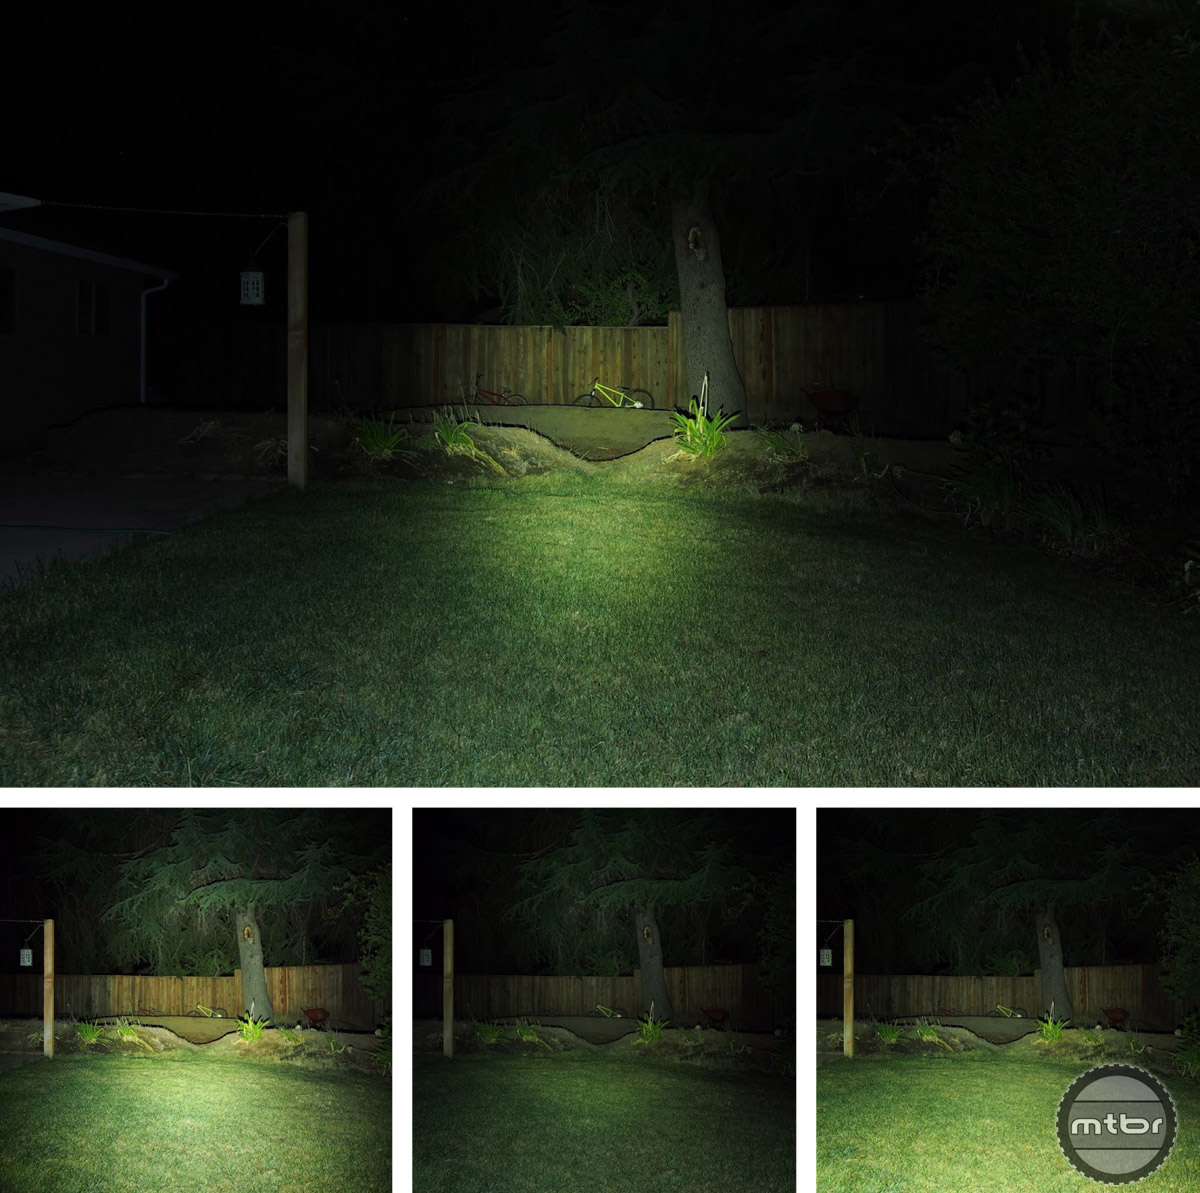 What kind of beam pattern is ideal for your needs and budget?